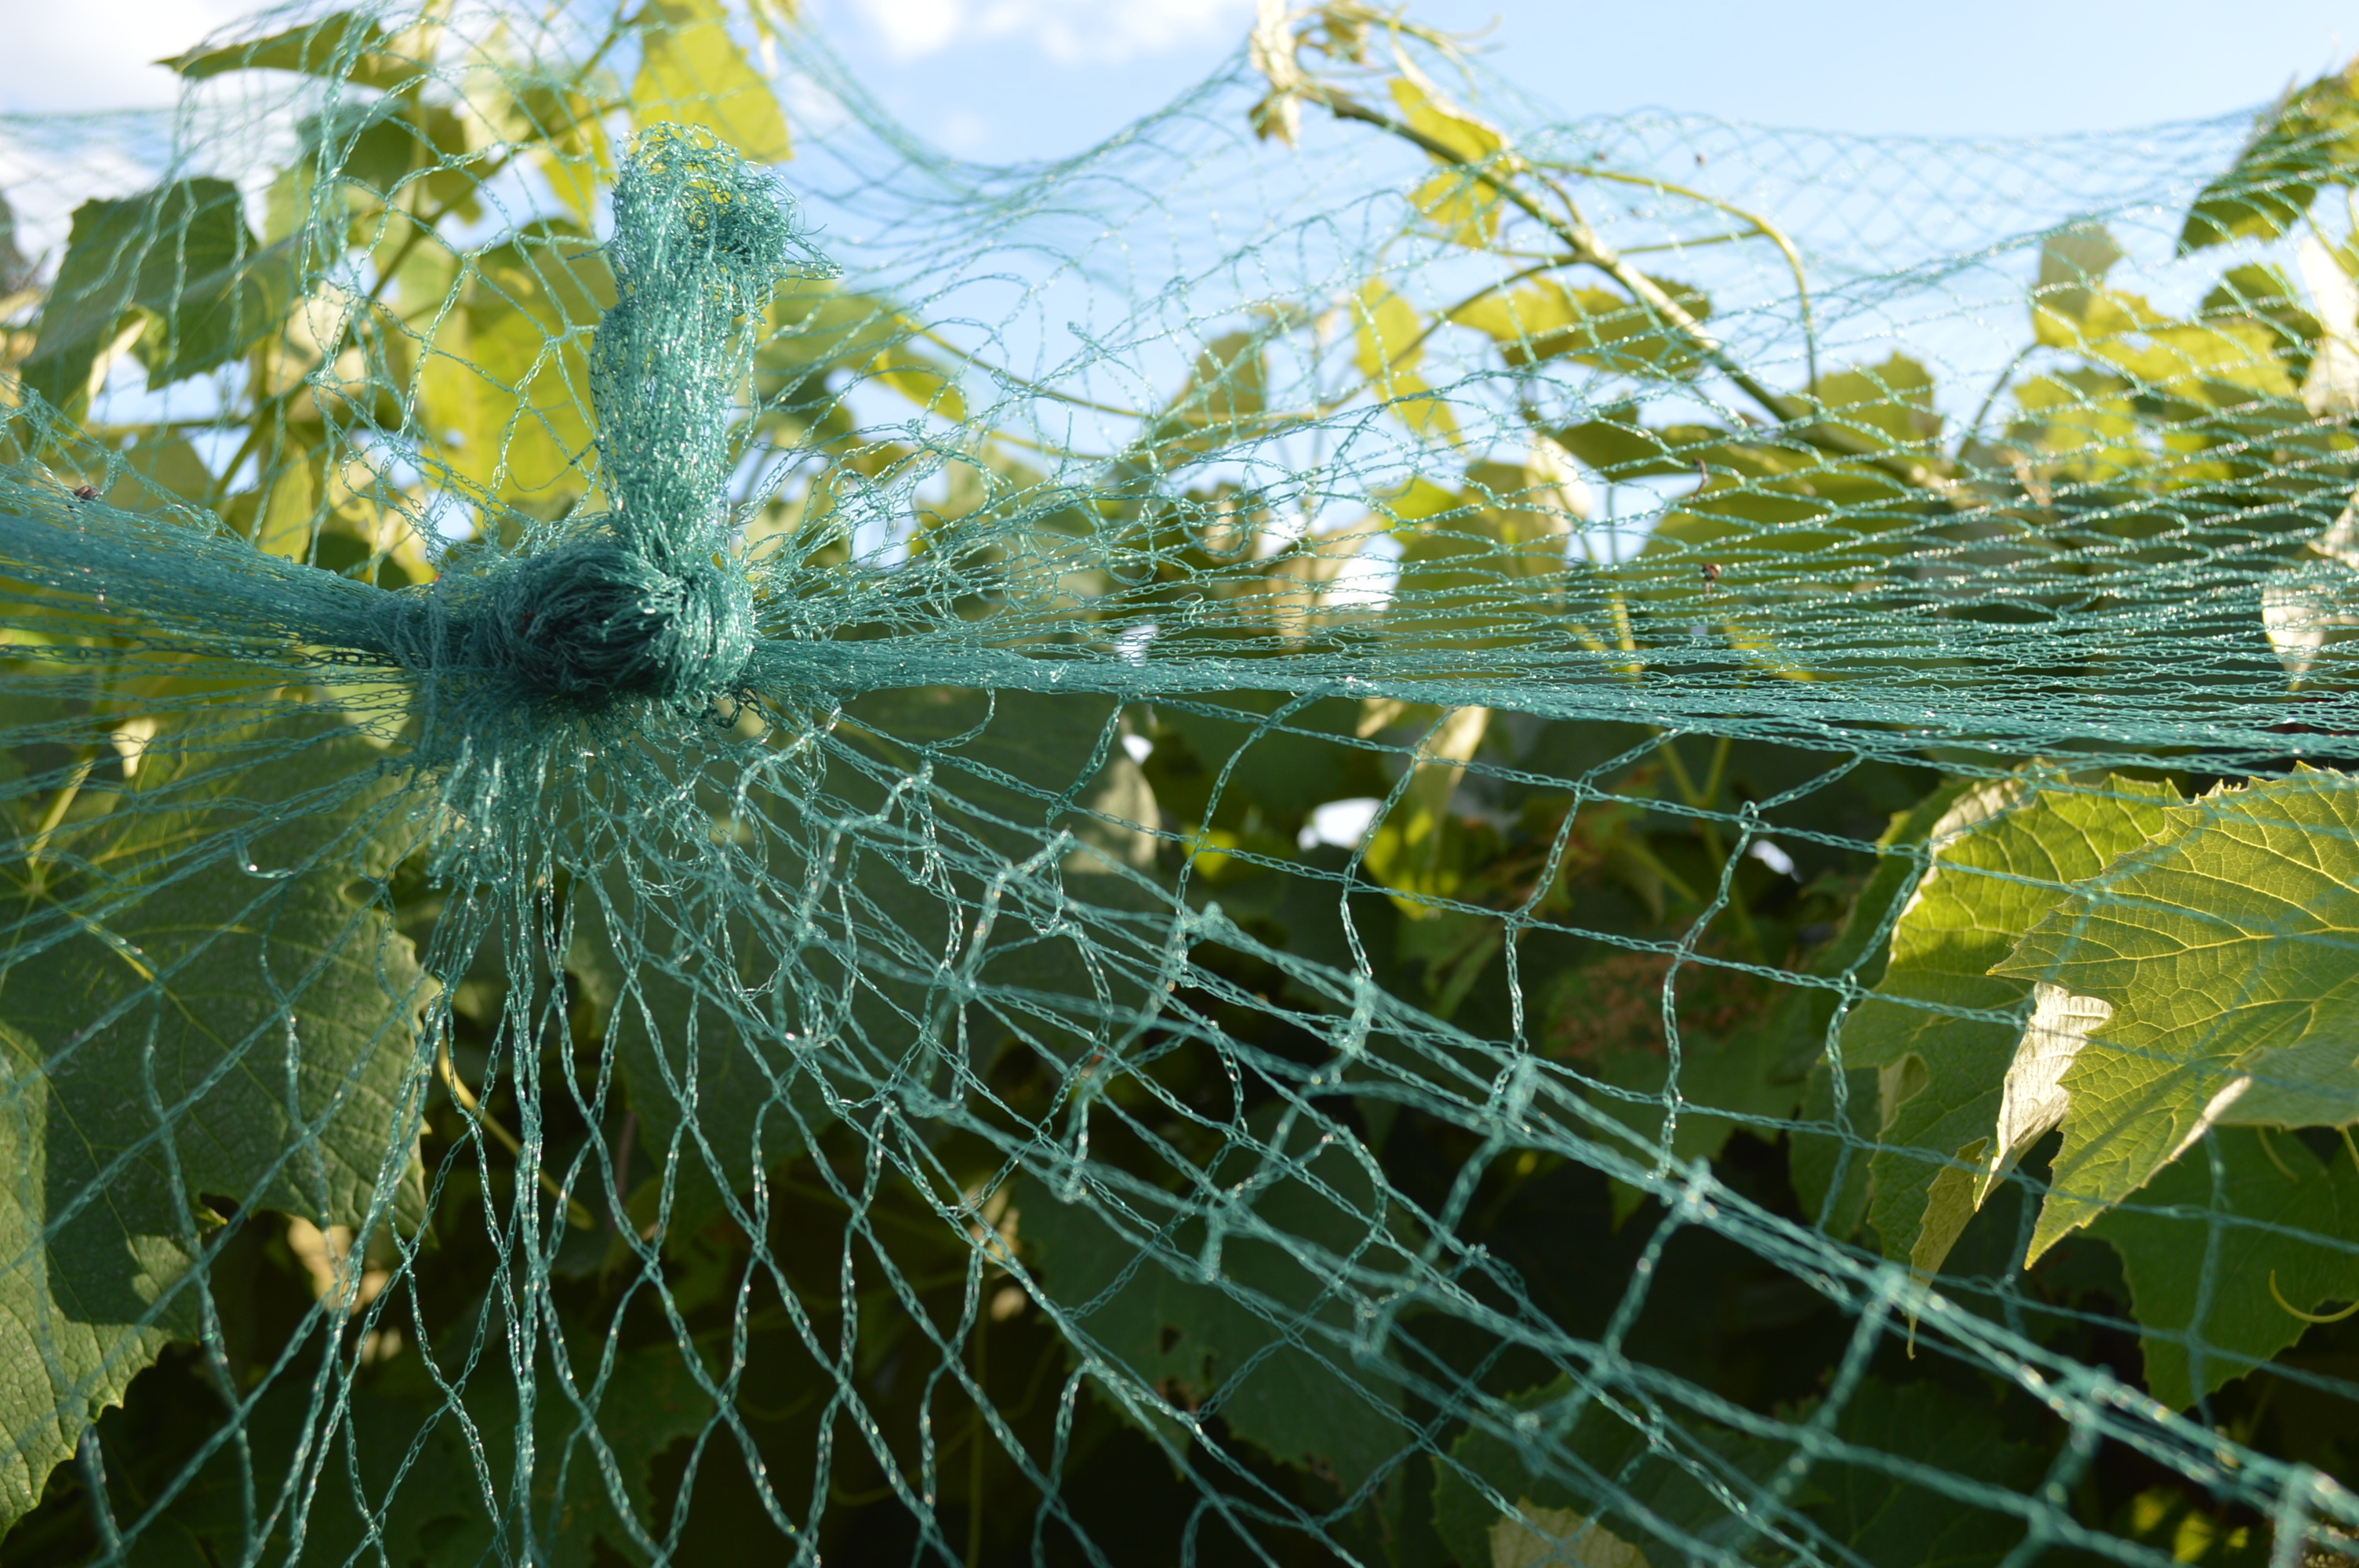 Viticulture: Night of the netting – Homegrown Iowan